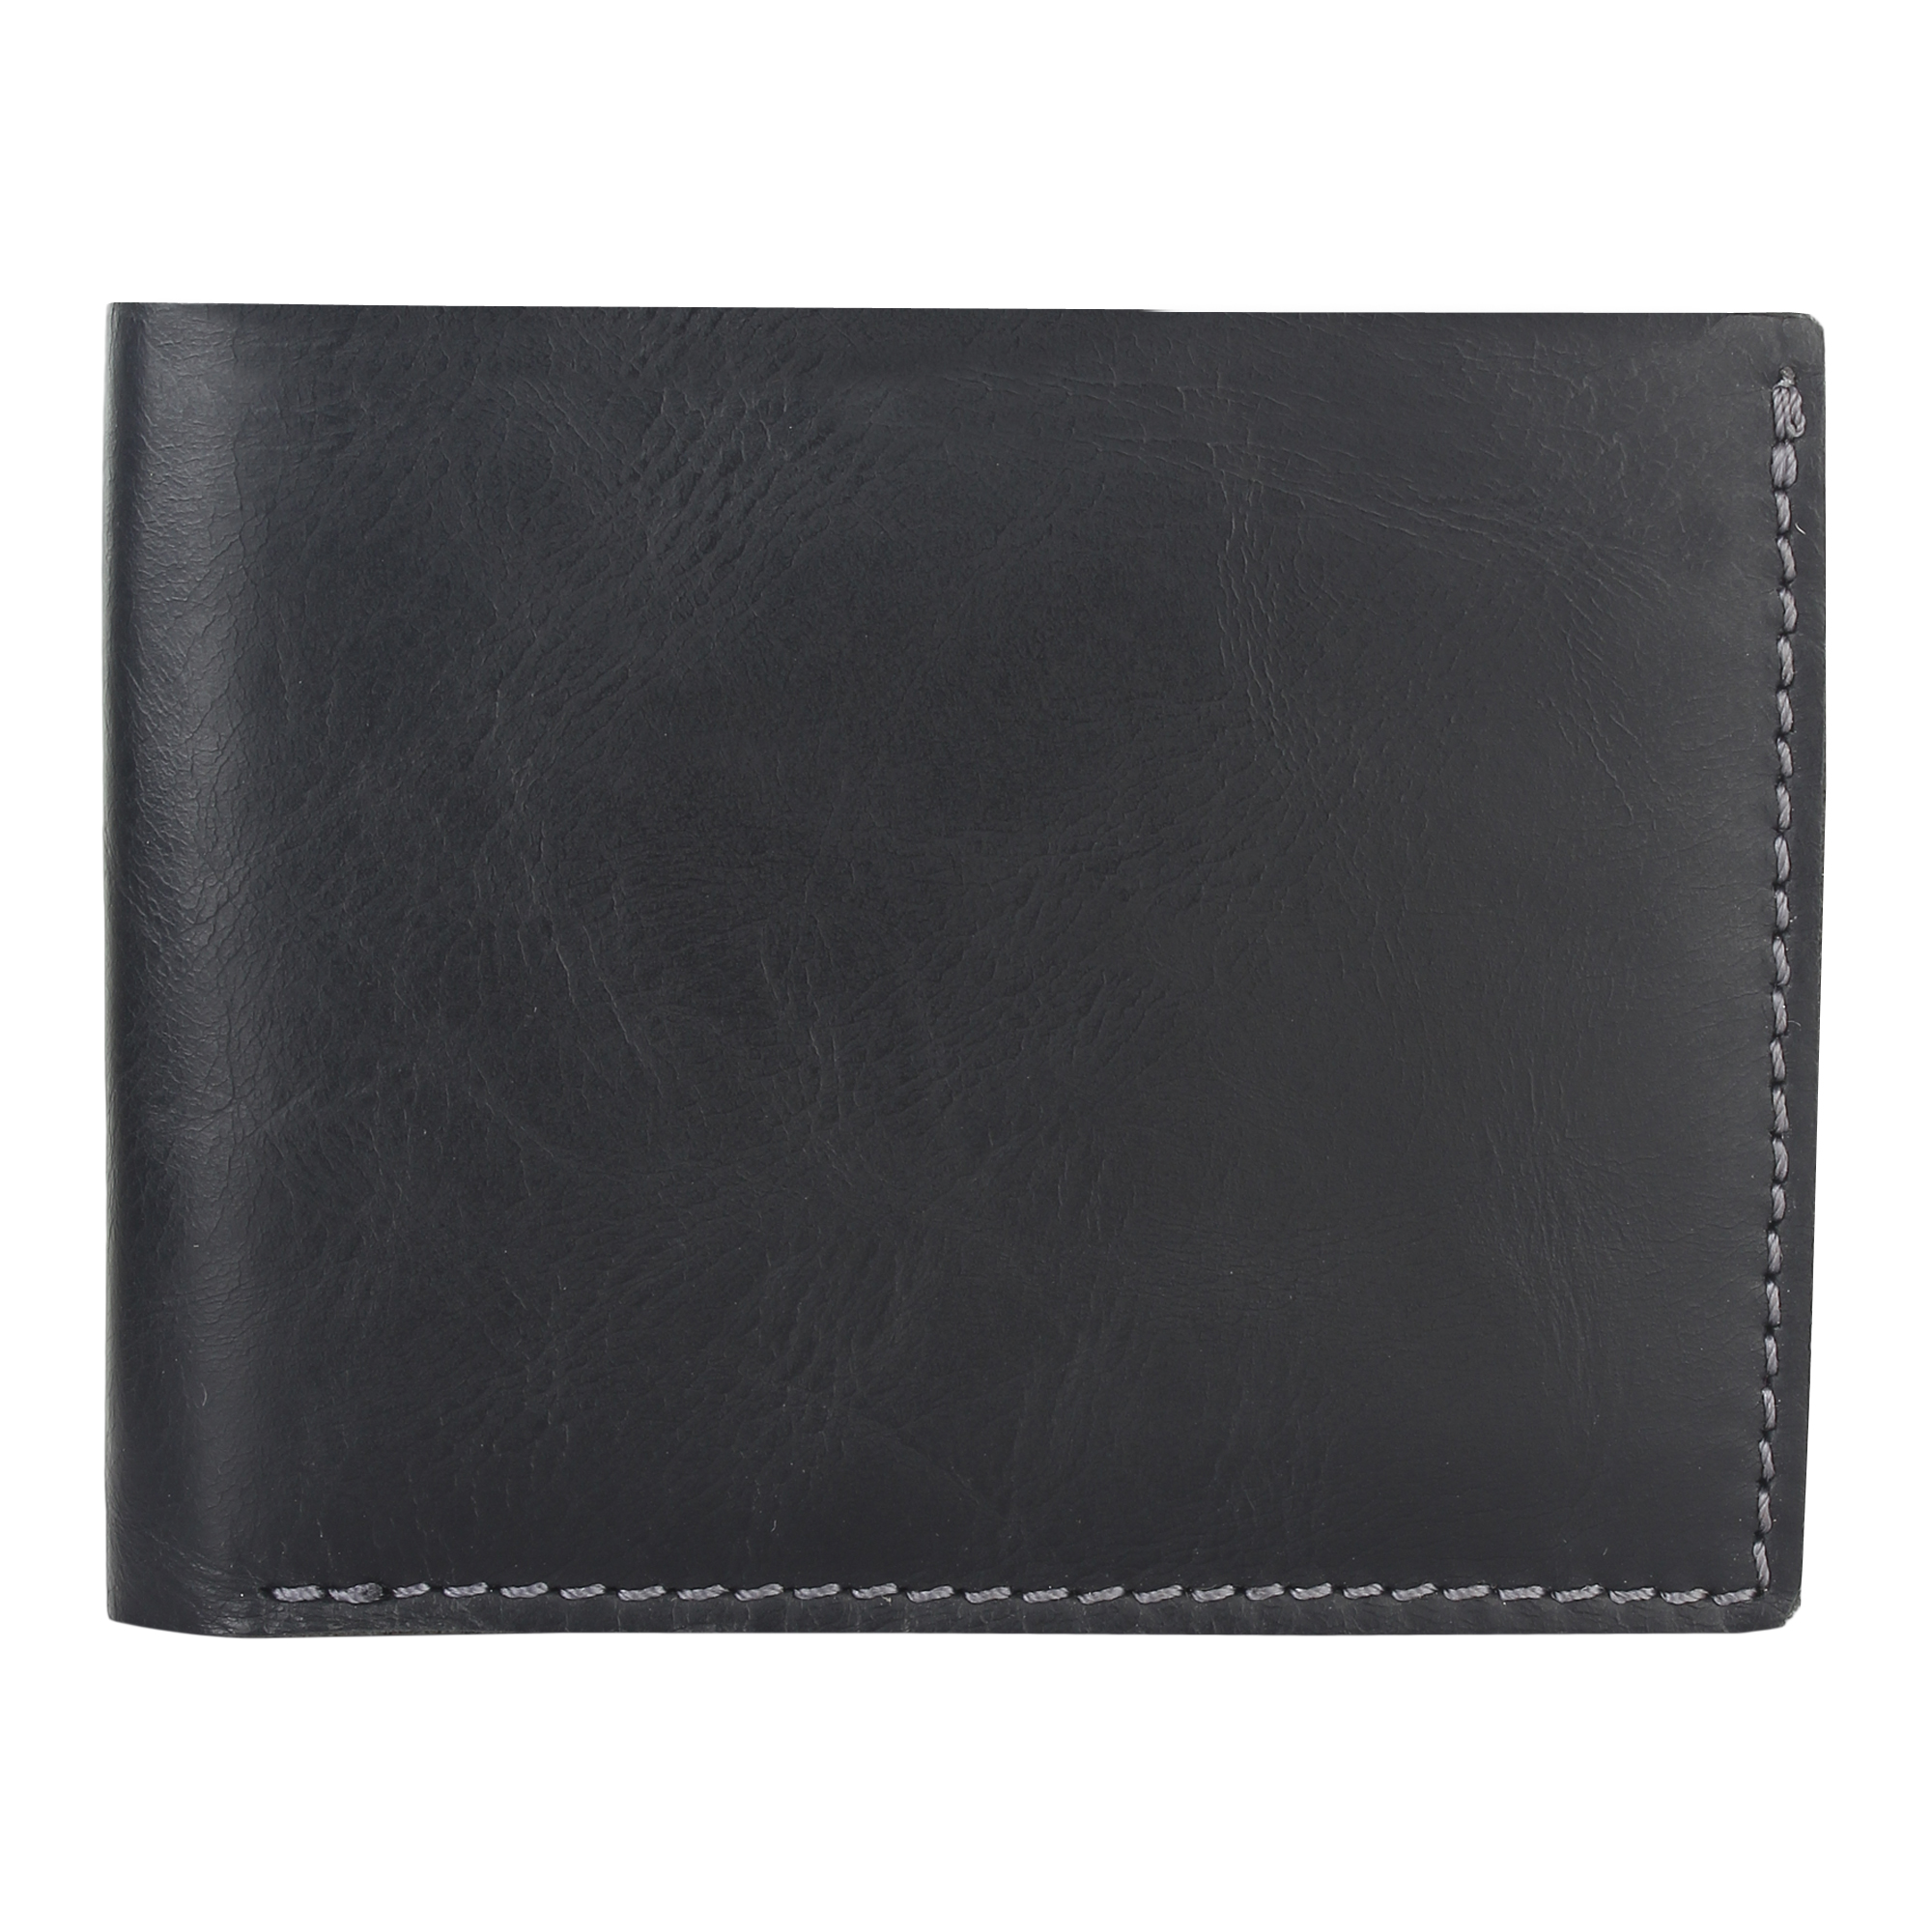 Leather Wallets Manufacturers in Alabama, Leather Wallets Suppliers in Alabama, Leather Wallets Wholesalers in Alabama, Leather Wallets Traders in Alabama